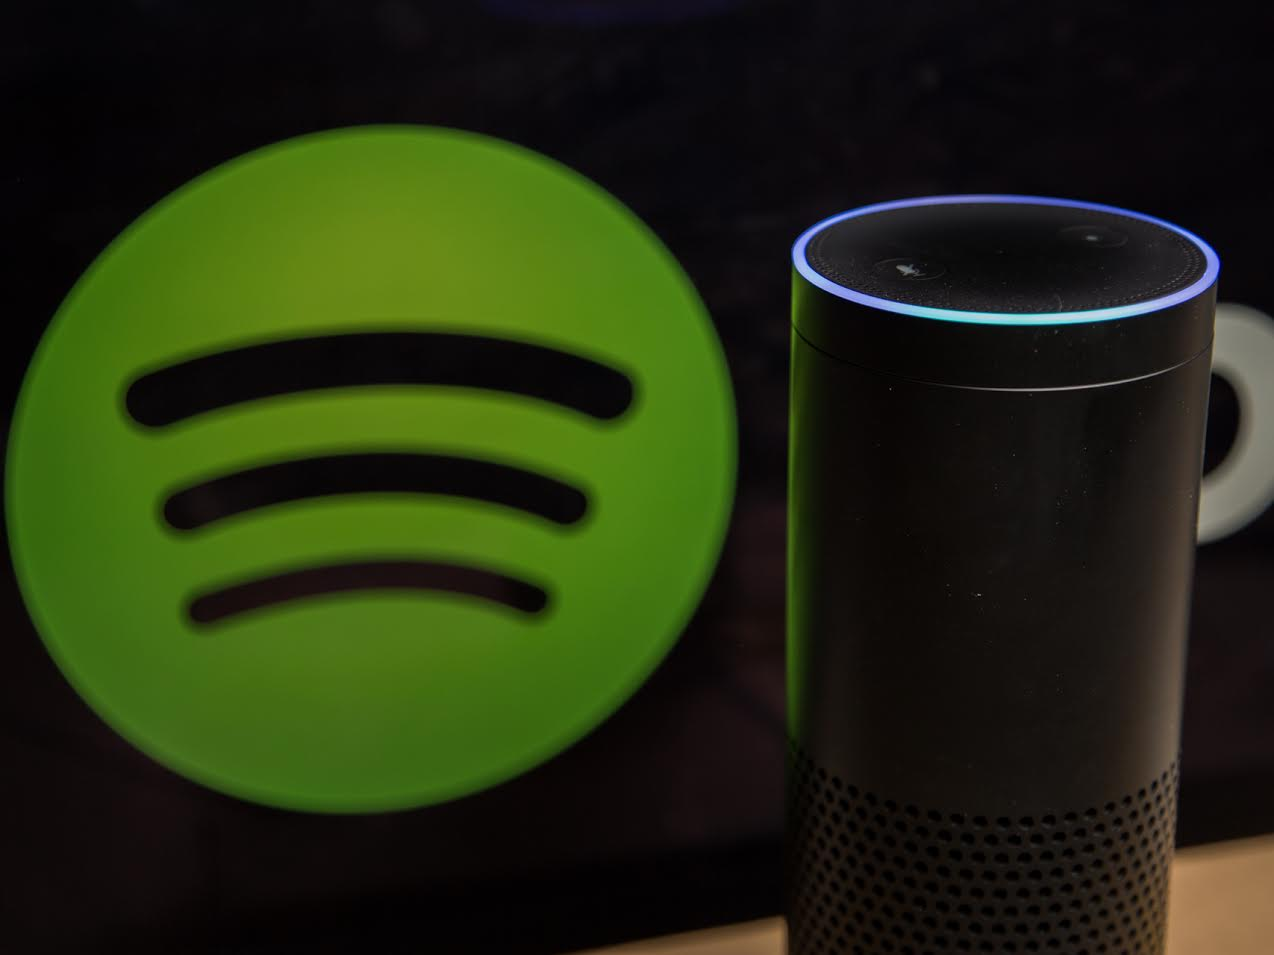 amazon-echo-spotify.jpg